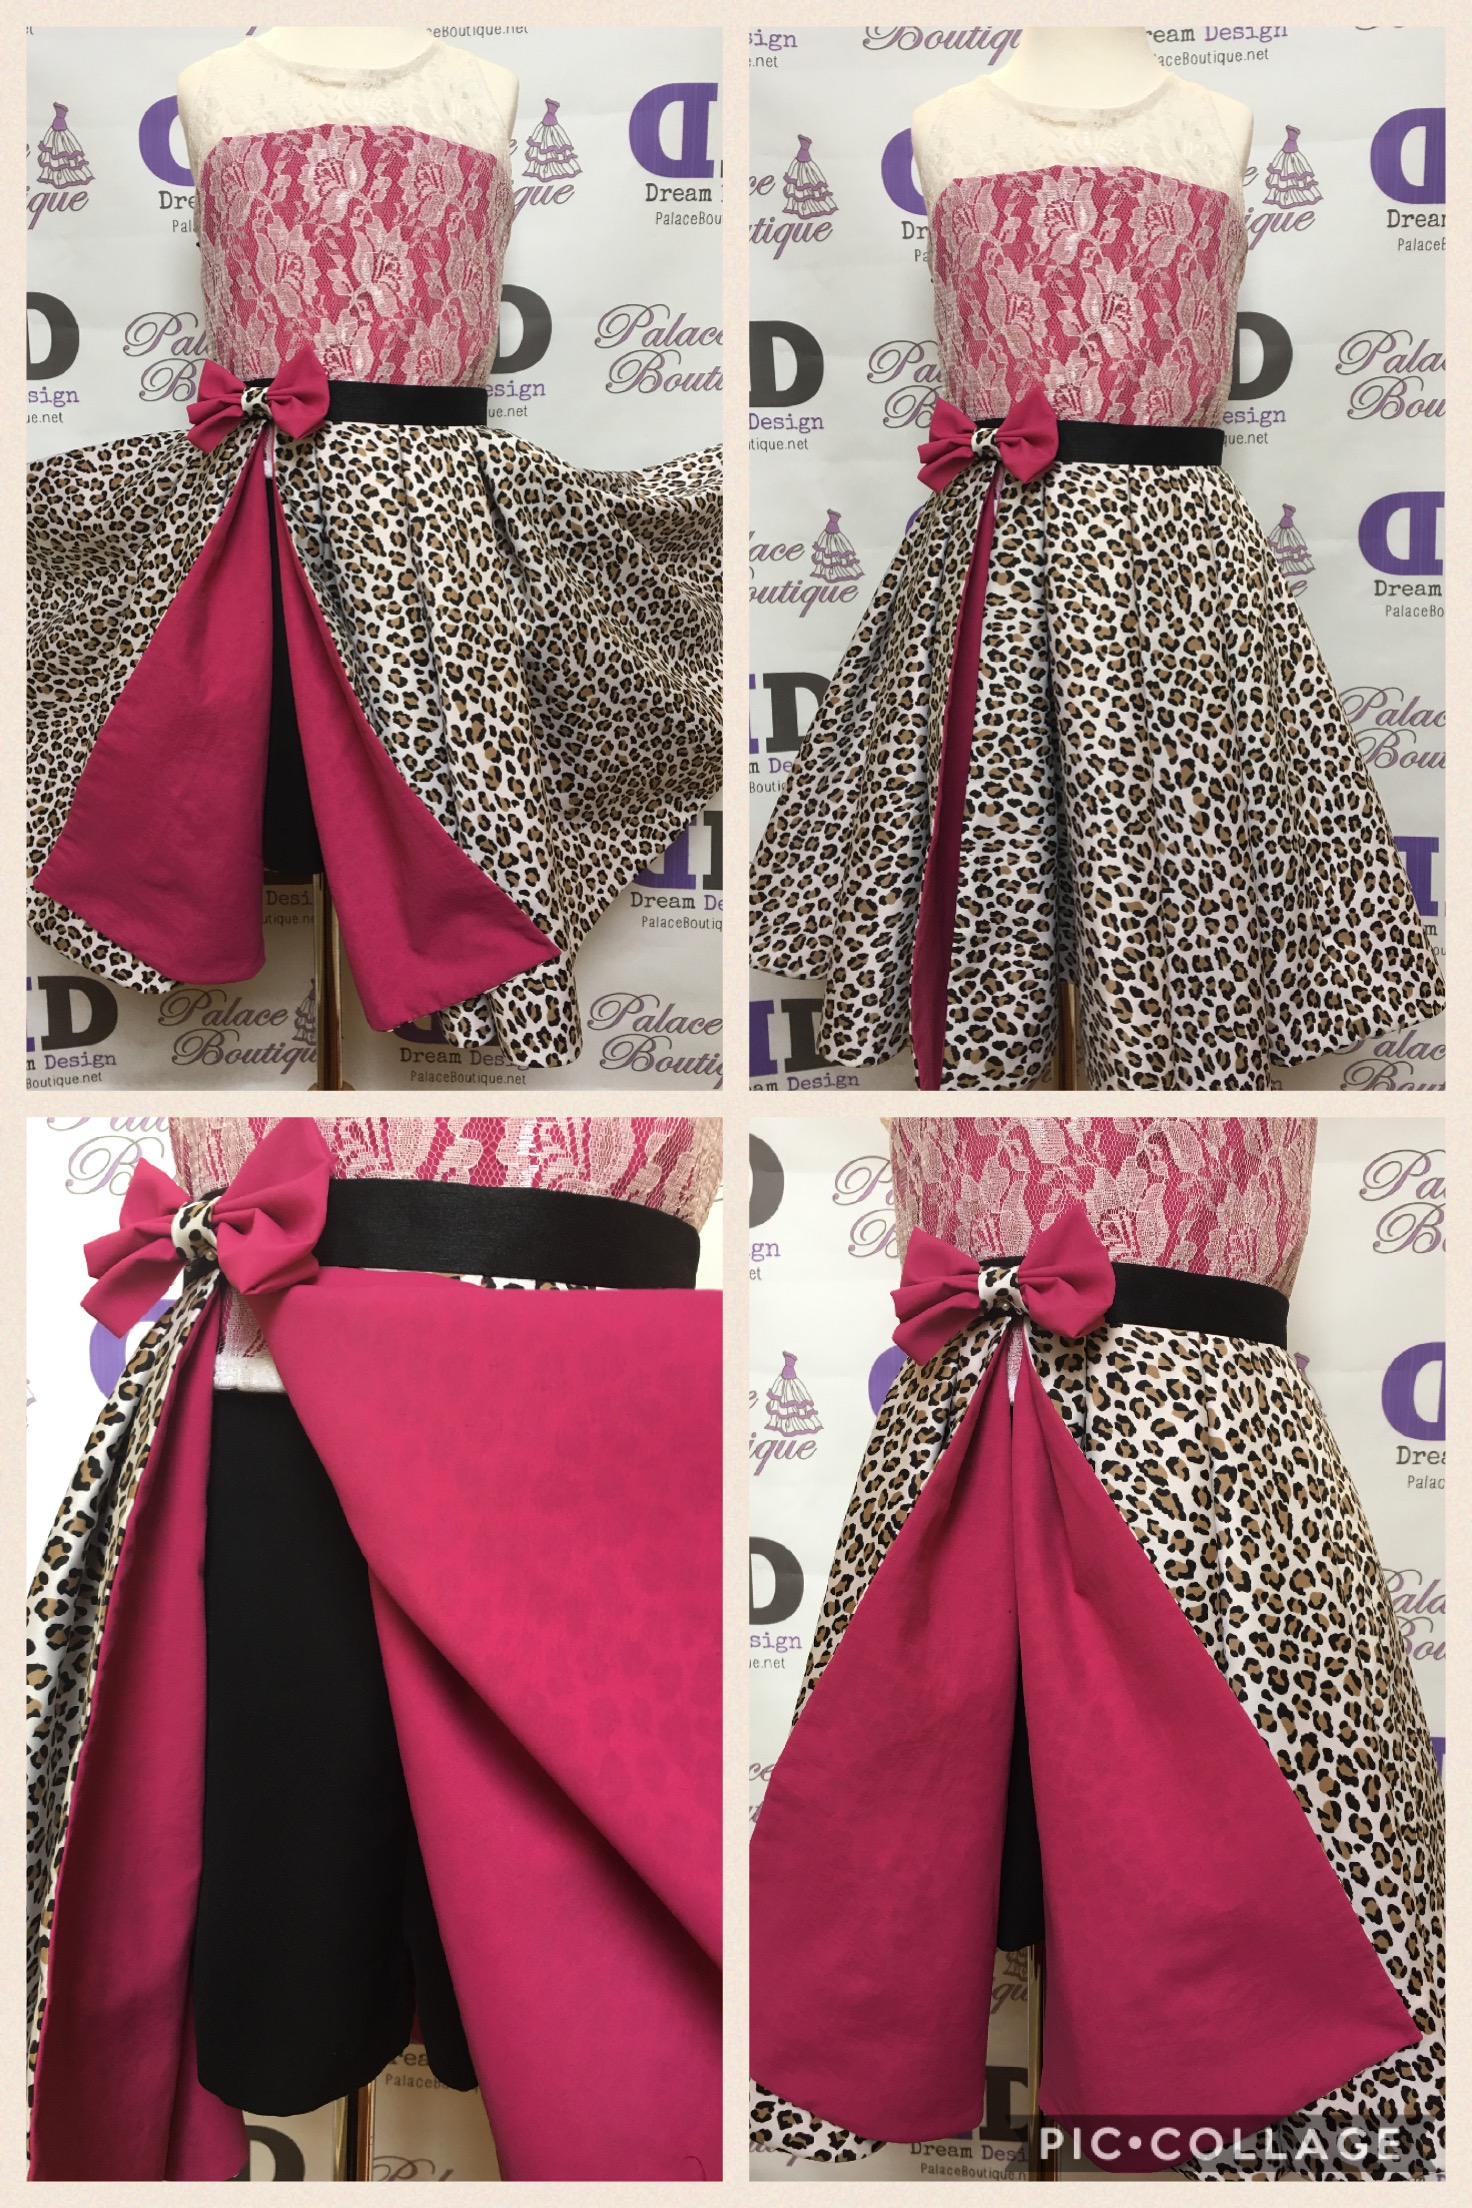 Cheetah hot pink runway outfit